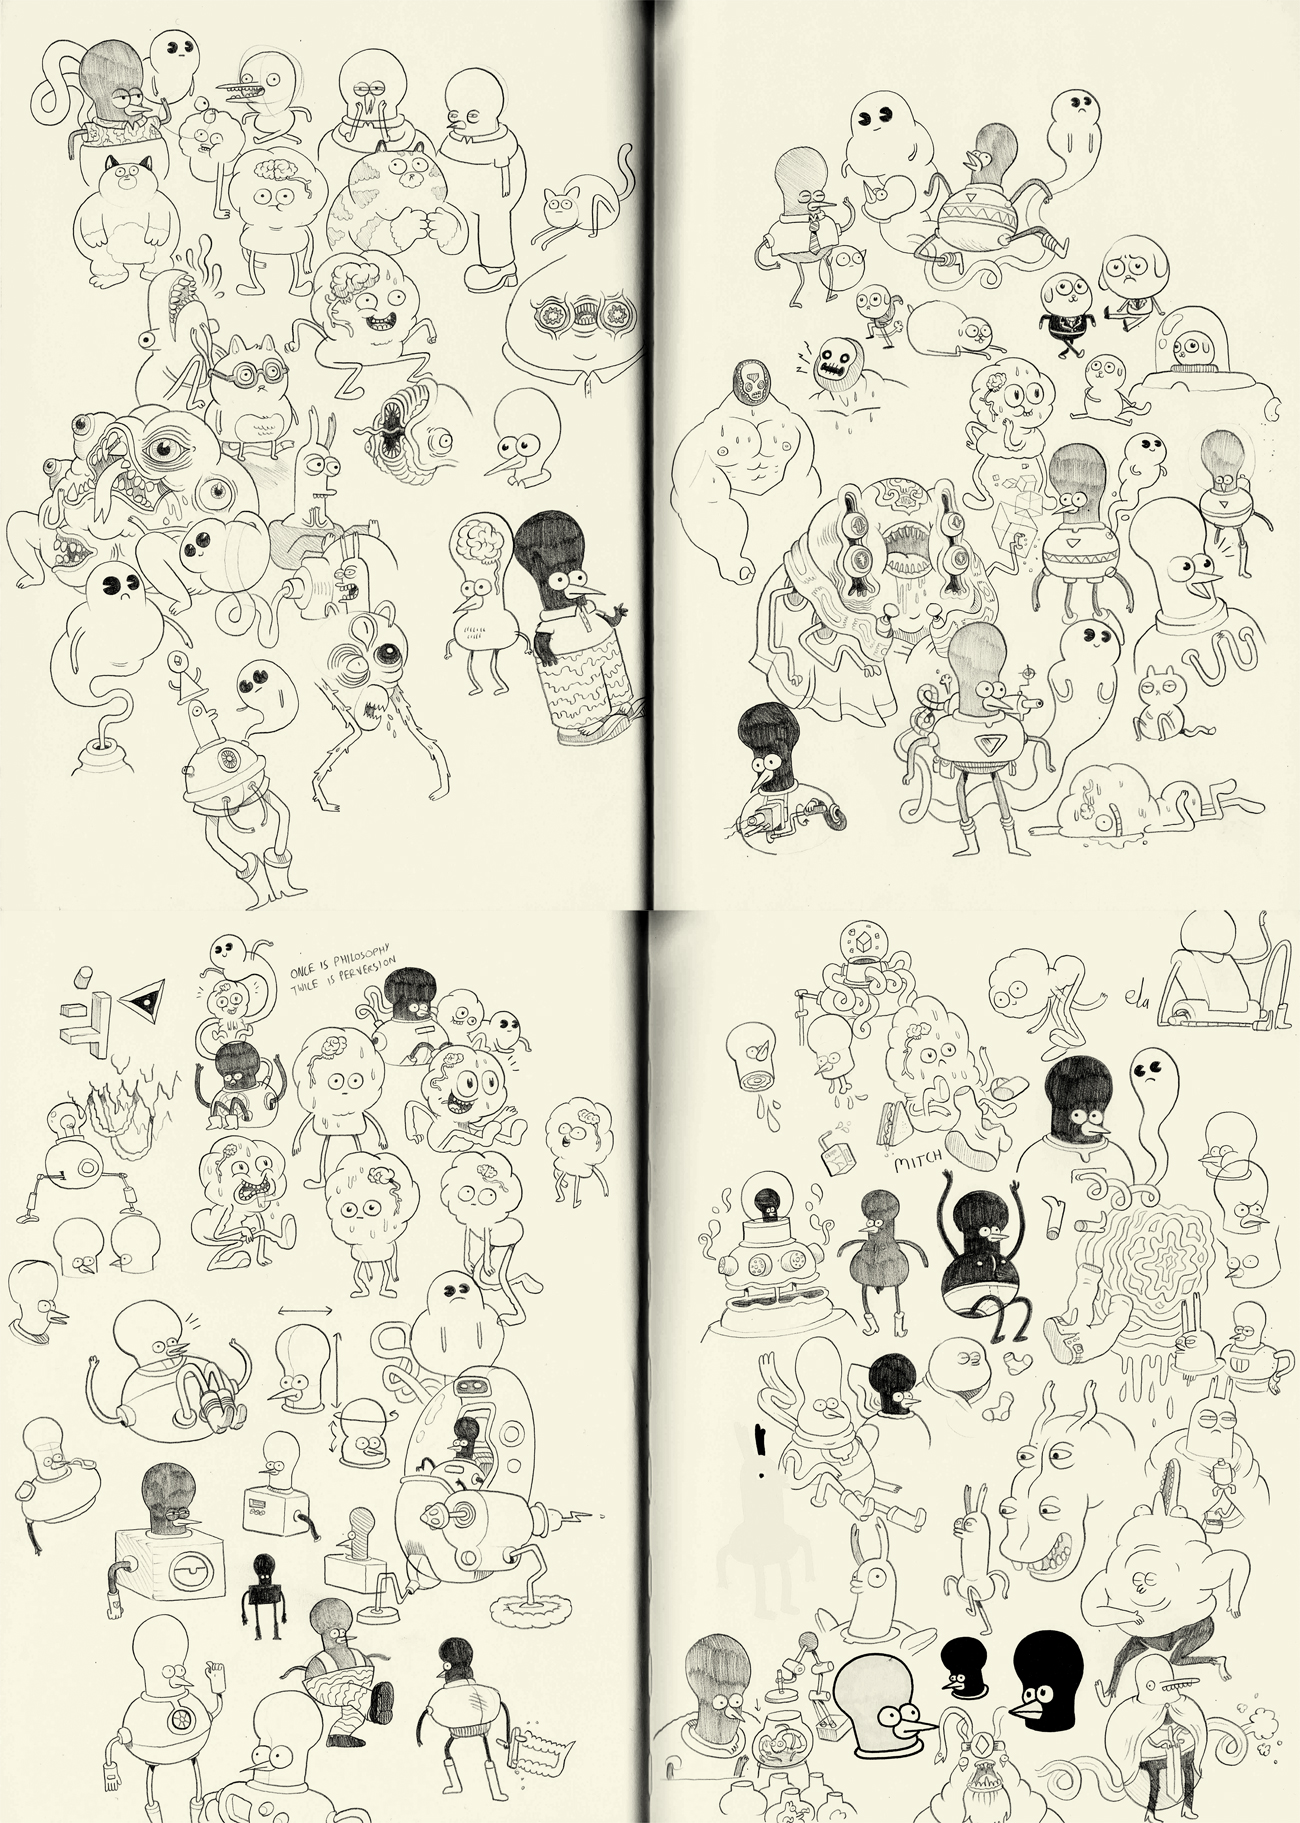 sketchbook workings by mrdynamite